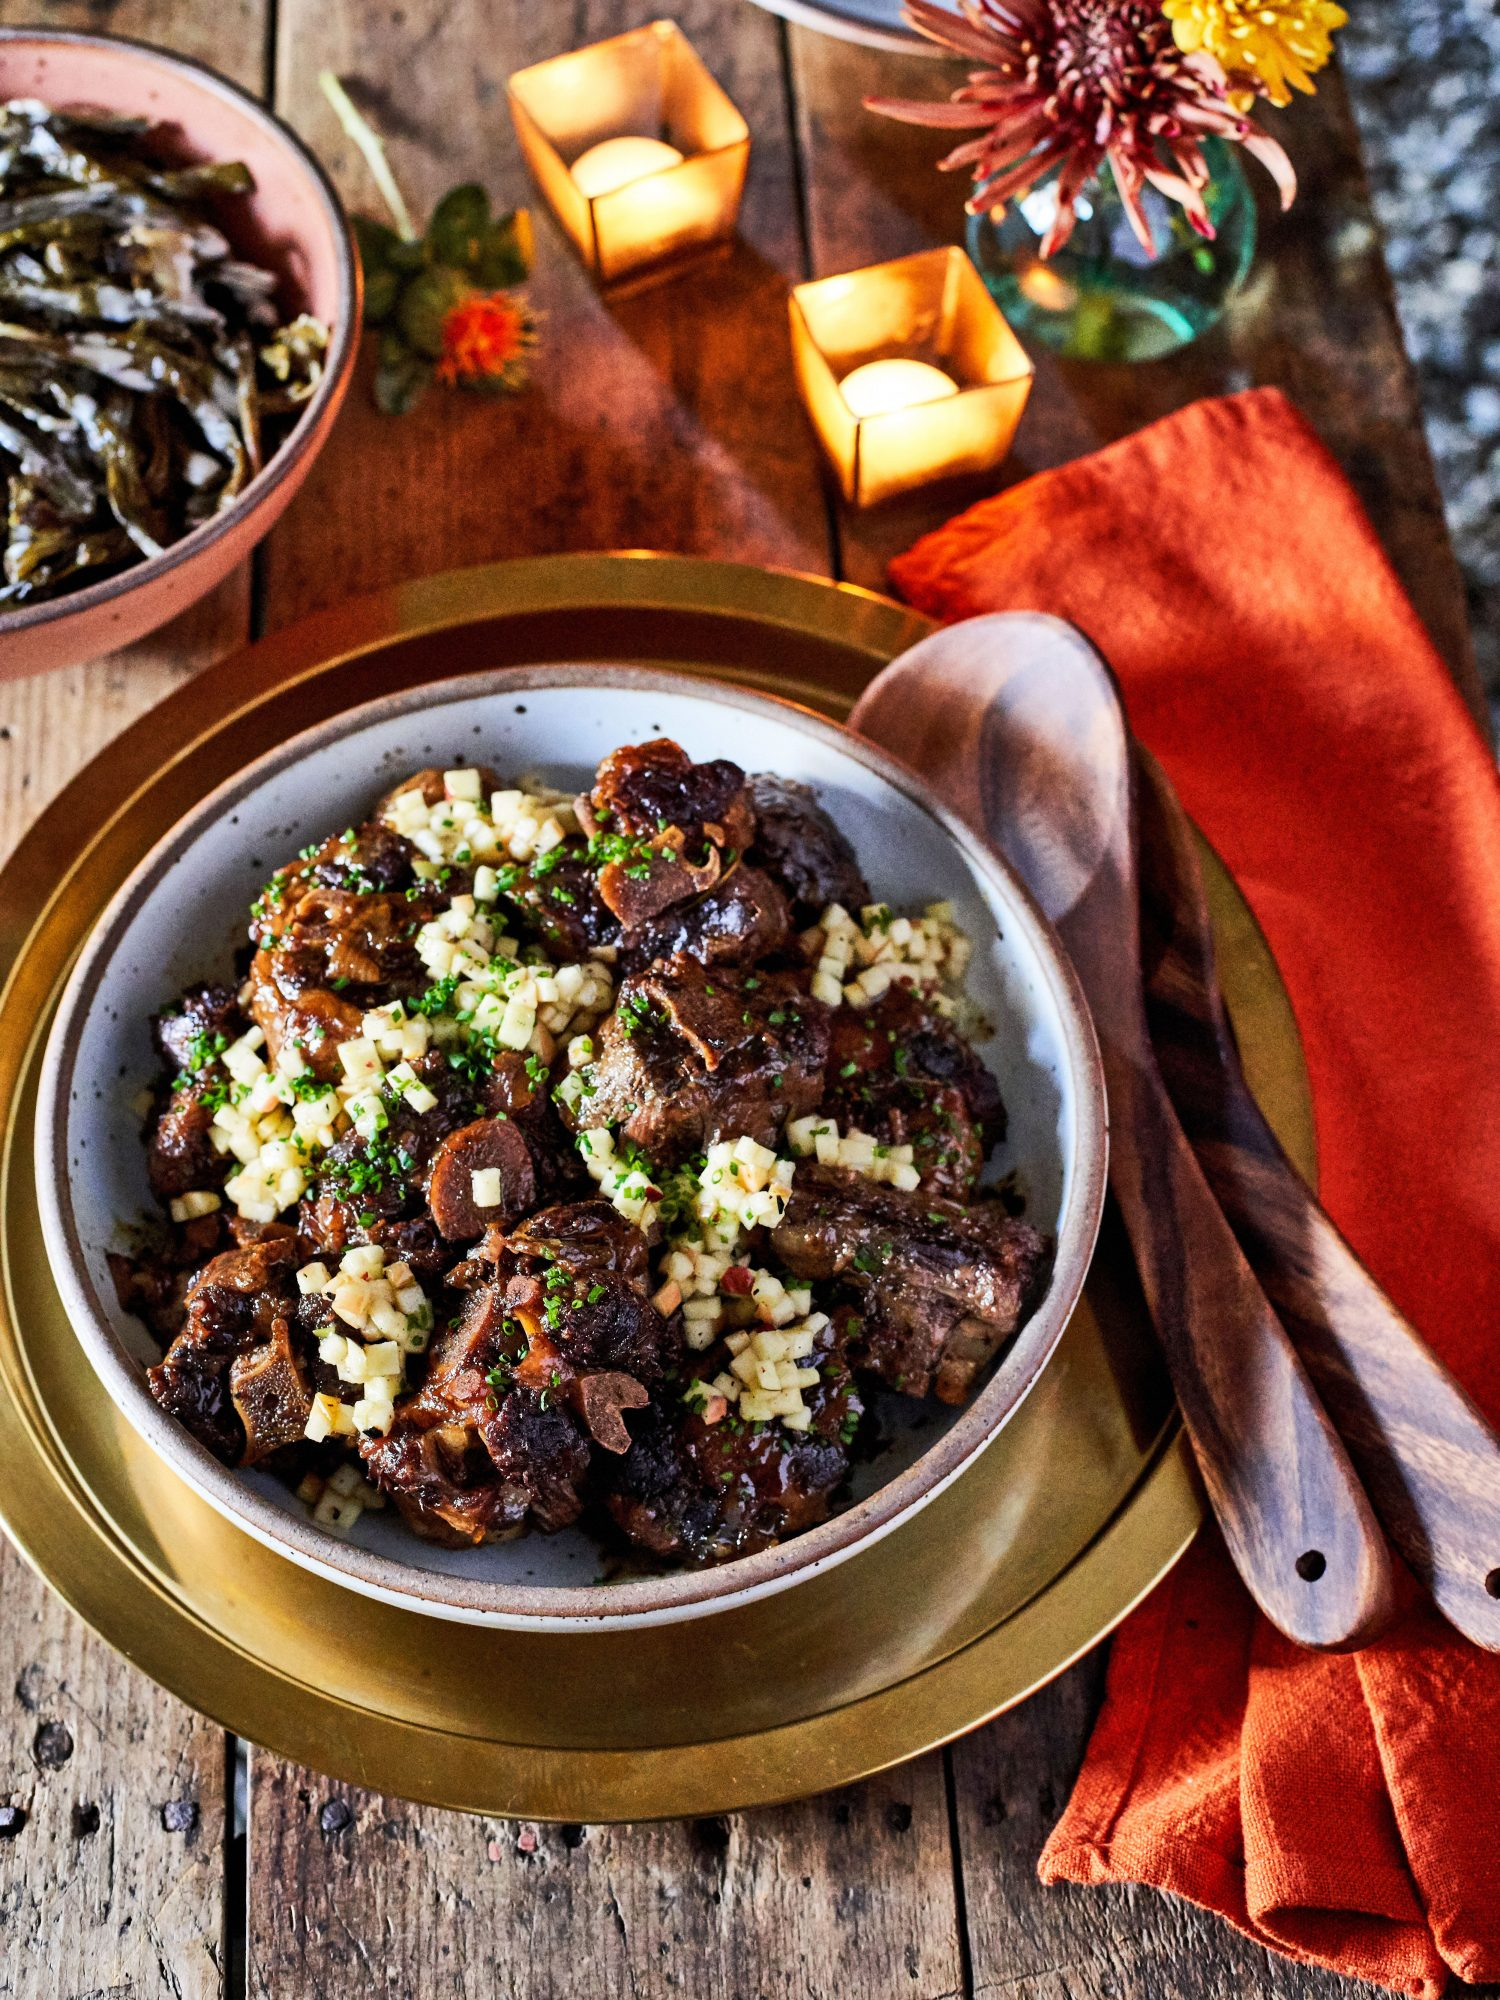 Ashleigh Shanti's Oxtails with Sumac-Apple Relish